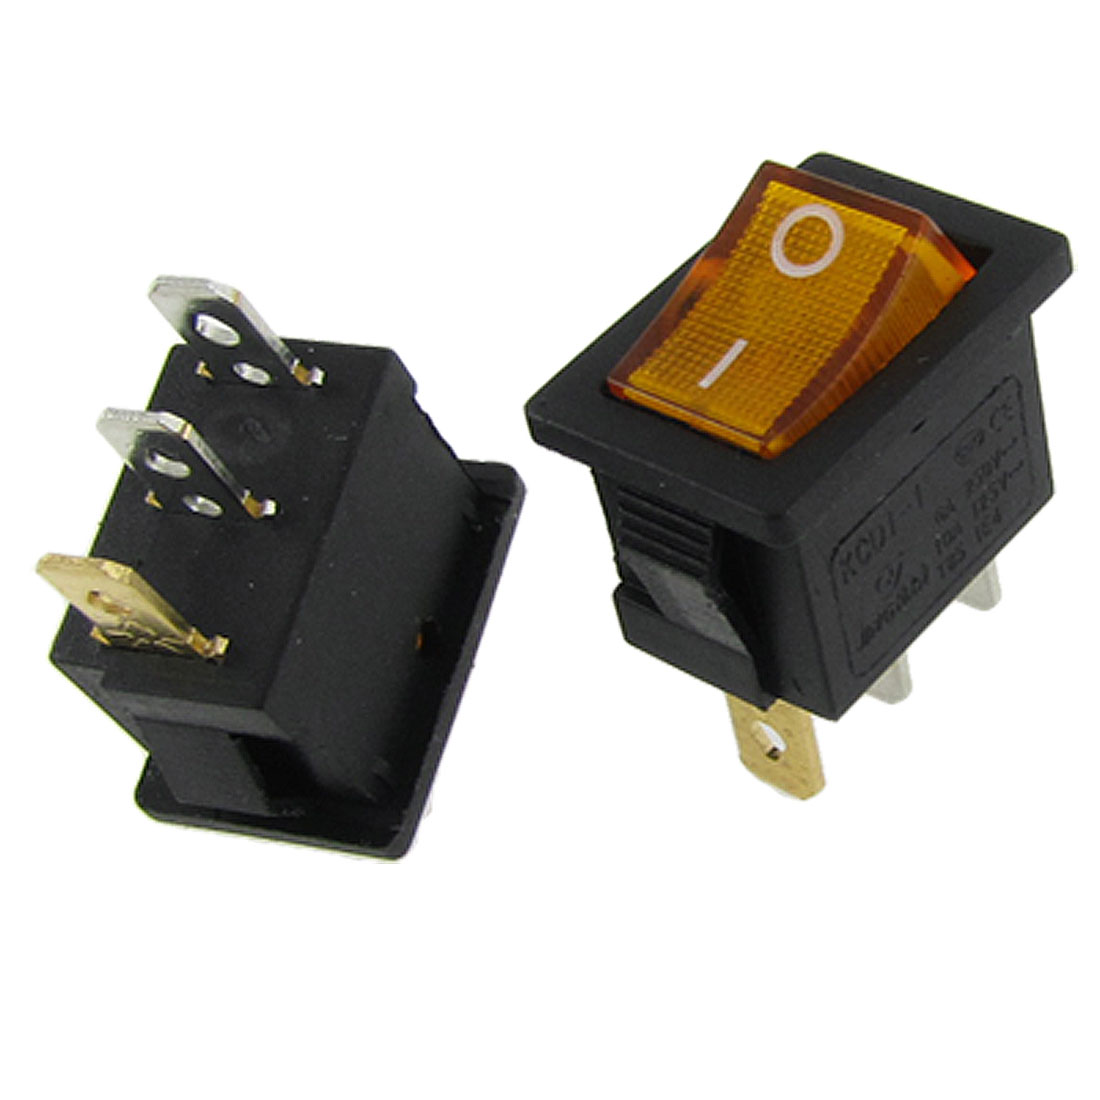 AC 6A/250V 10A/125V Yellow Neon Light Illuminated On-Off SPST Rocker Switch 2 Pcs